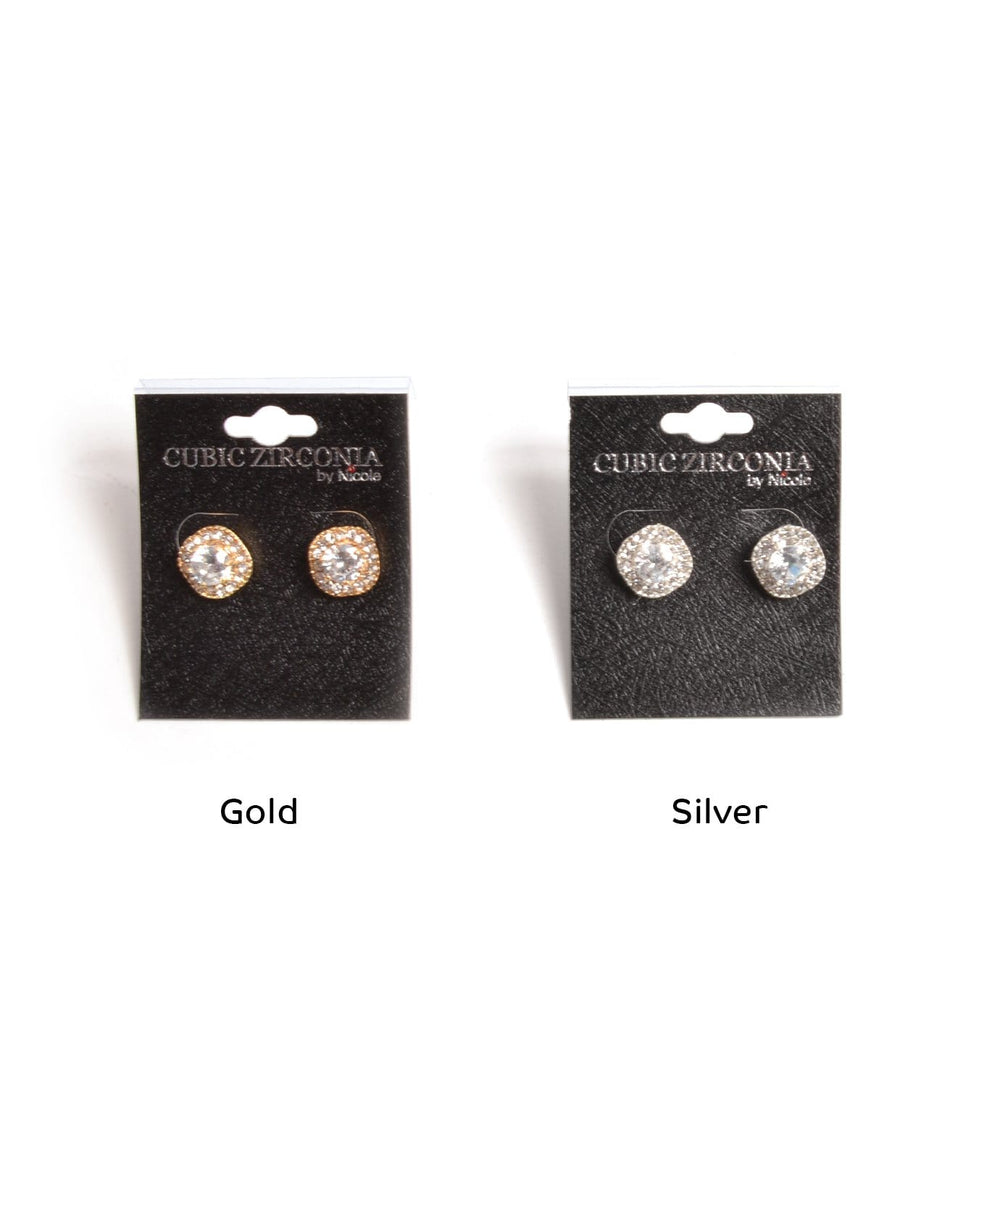 Gleaming Cubic Zirconia Studs